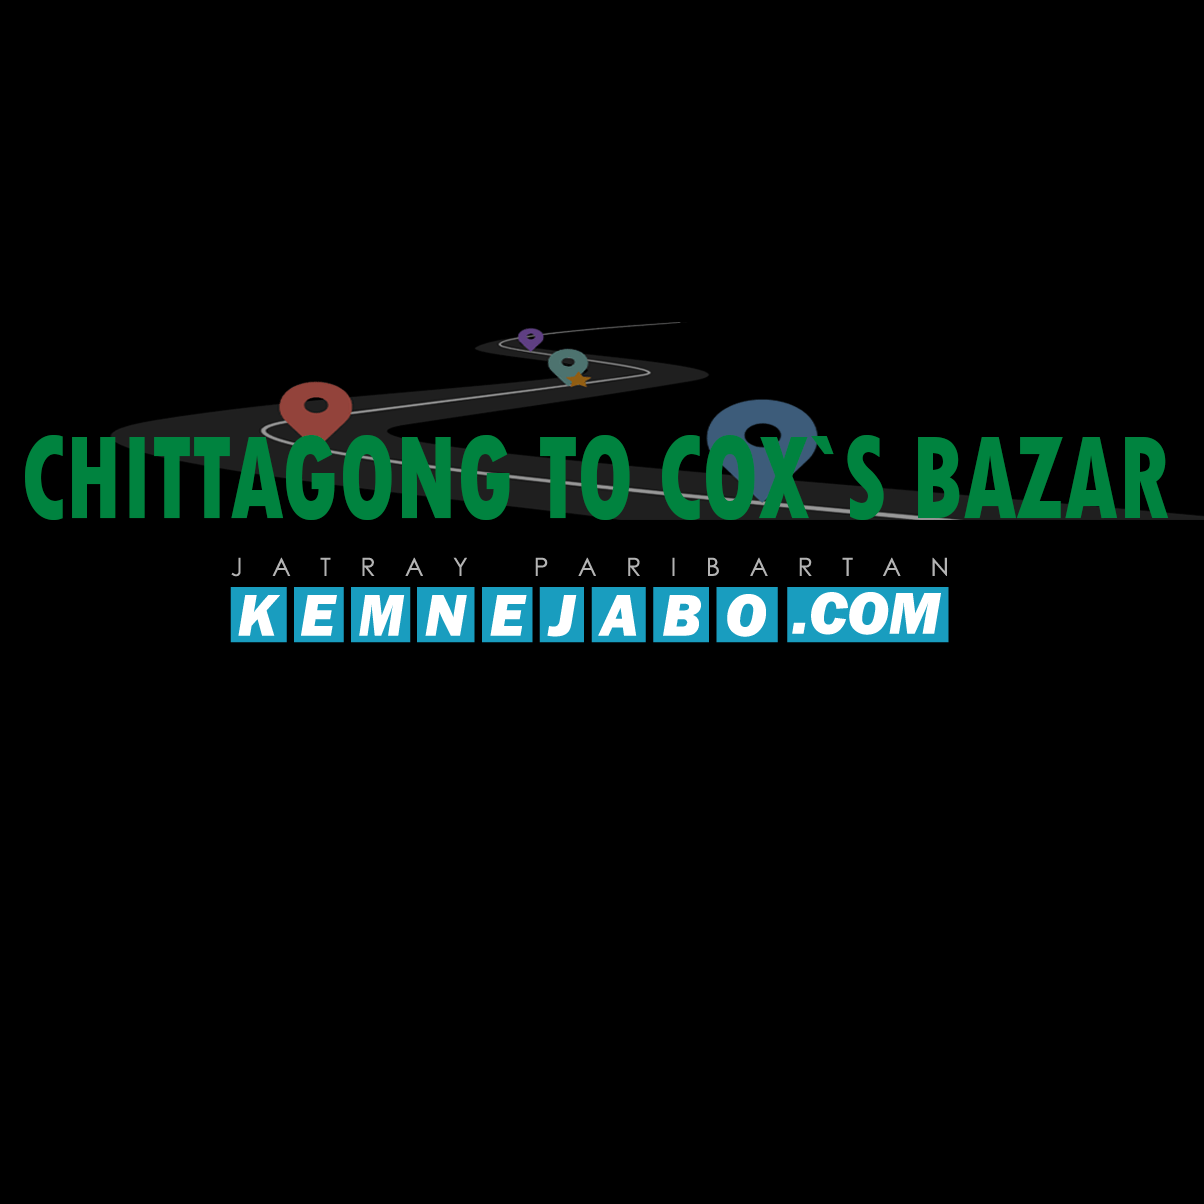 Chittagong To Coxsbazar Bus Prices, Counters Number and Location